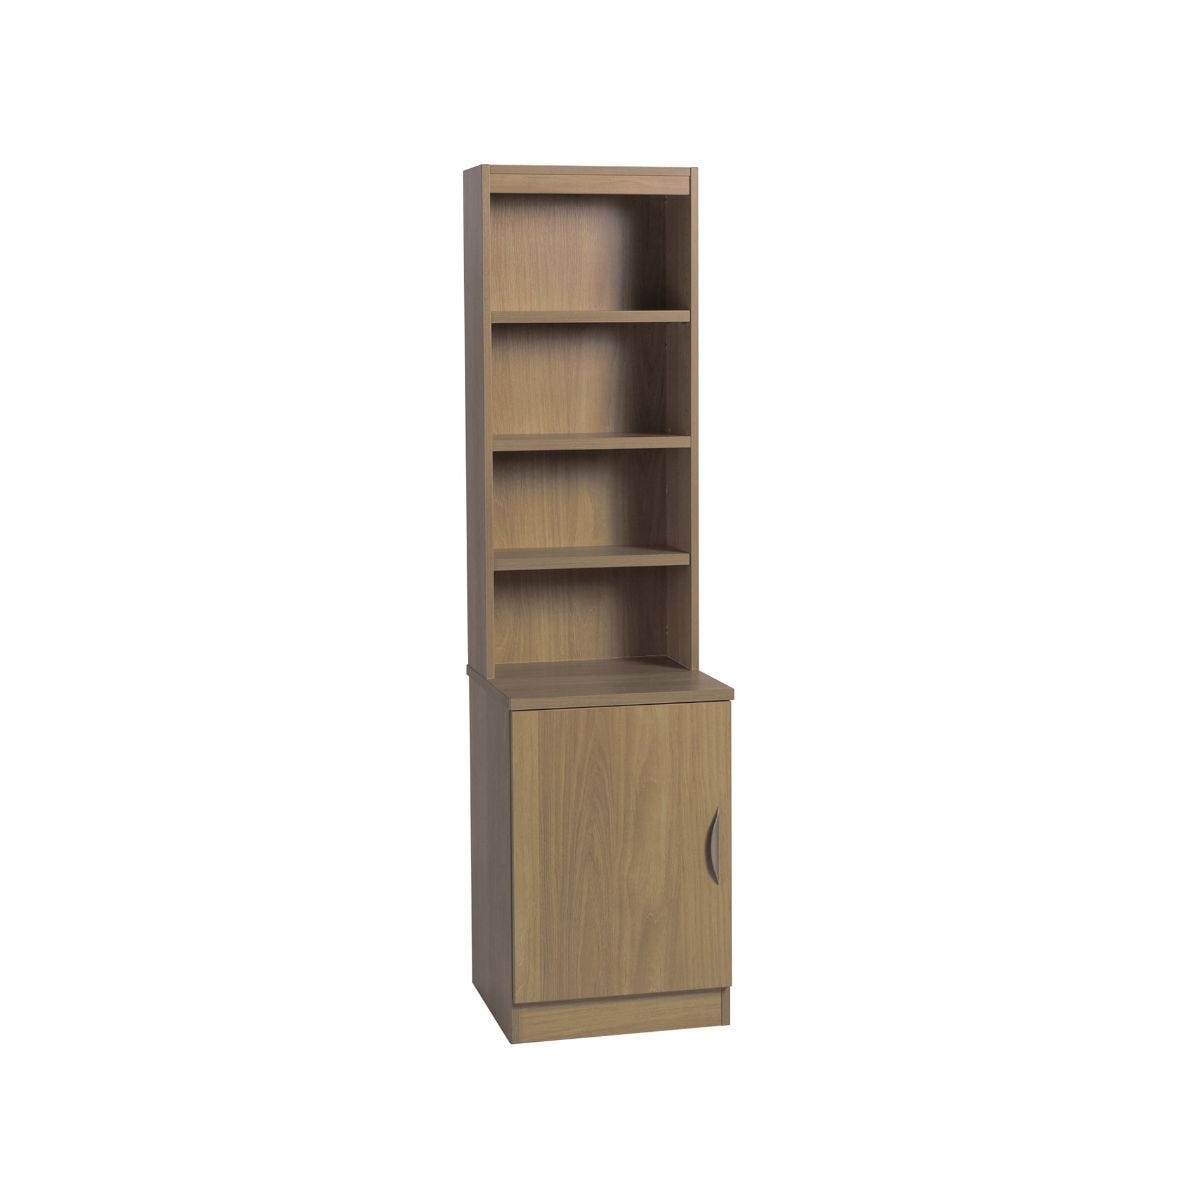 R White Desk Height Wide Cupboard 48cm with Overshelving, English Oak Wood Grain